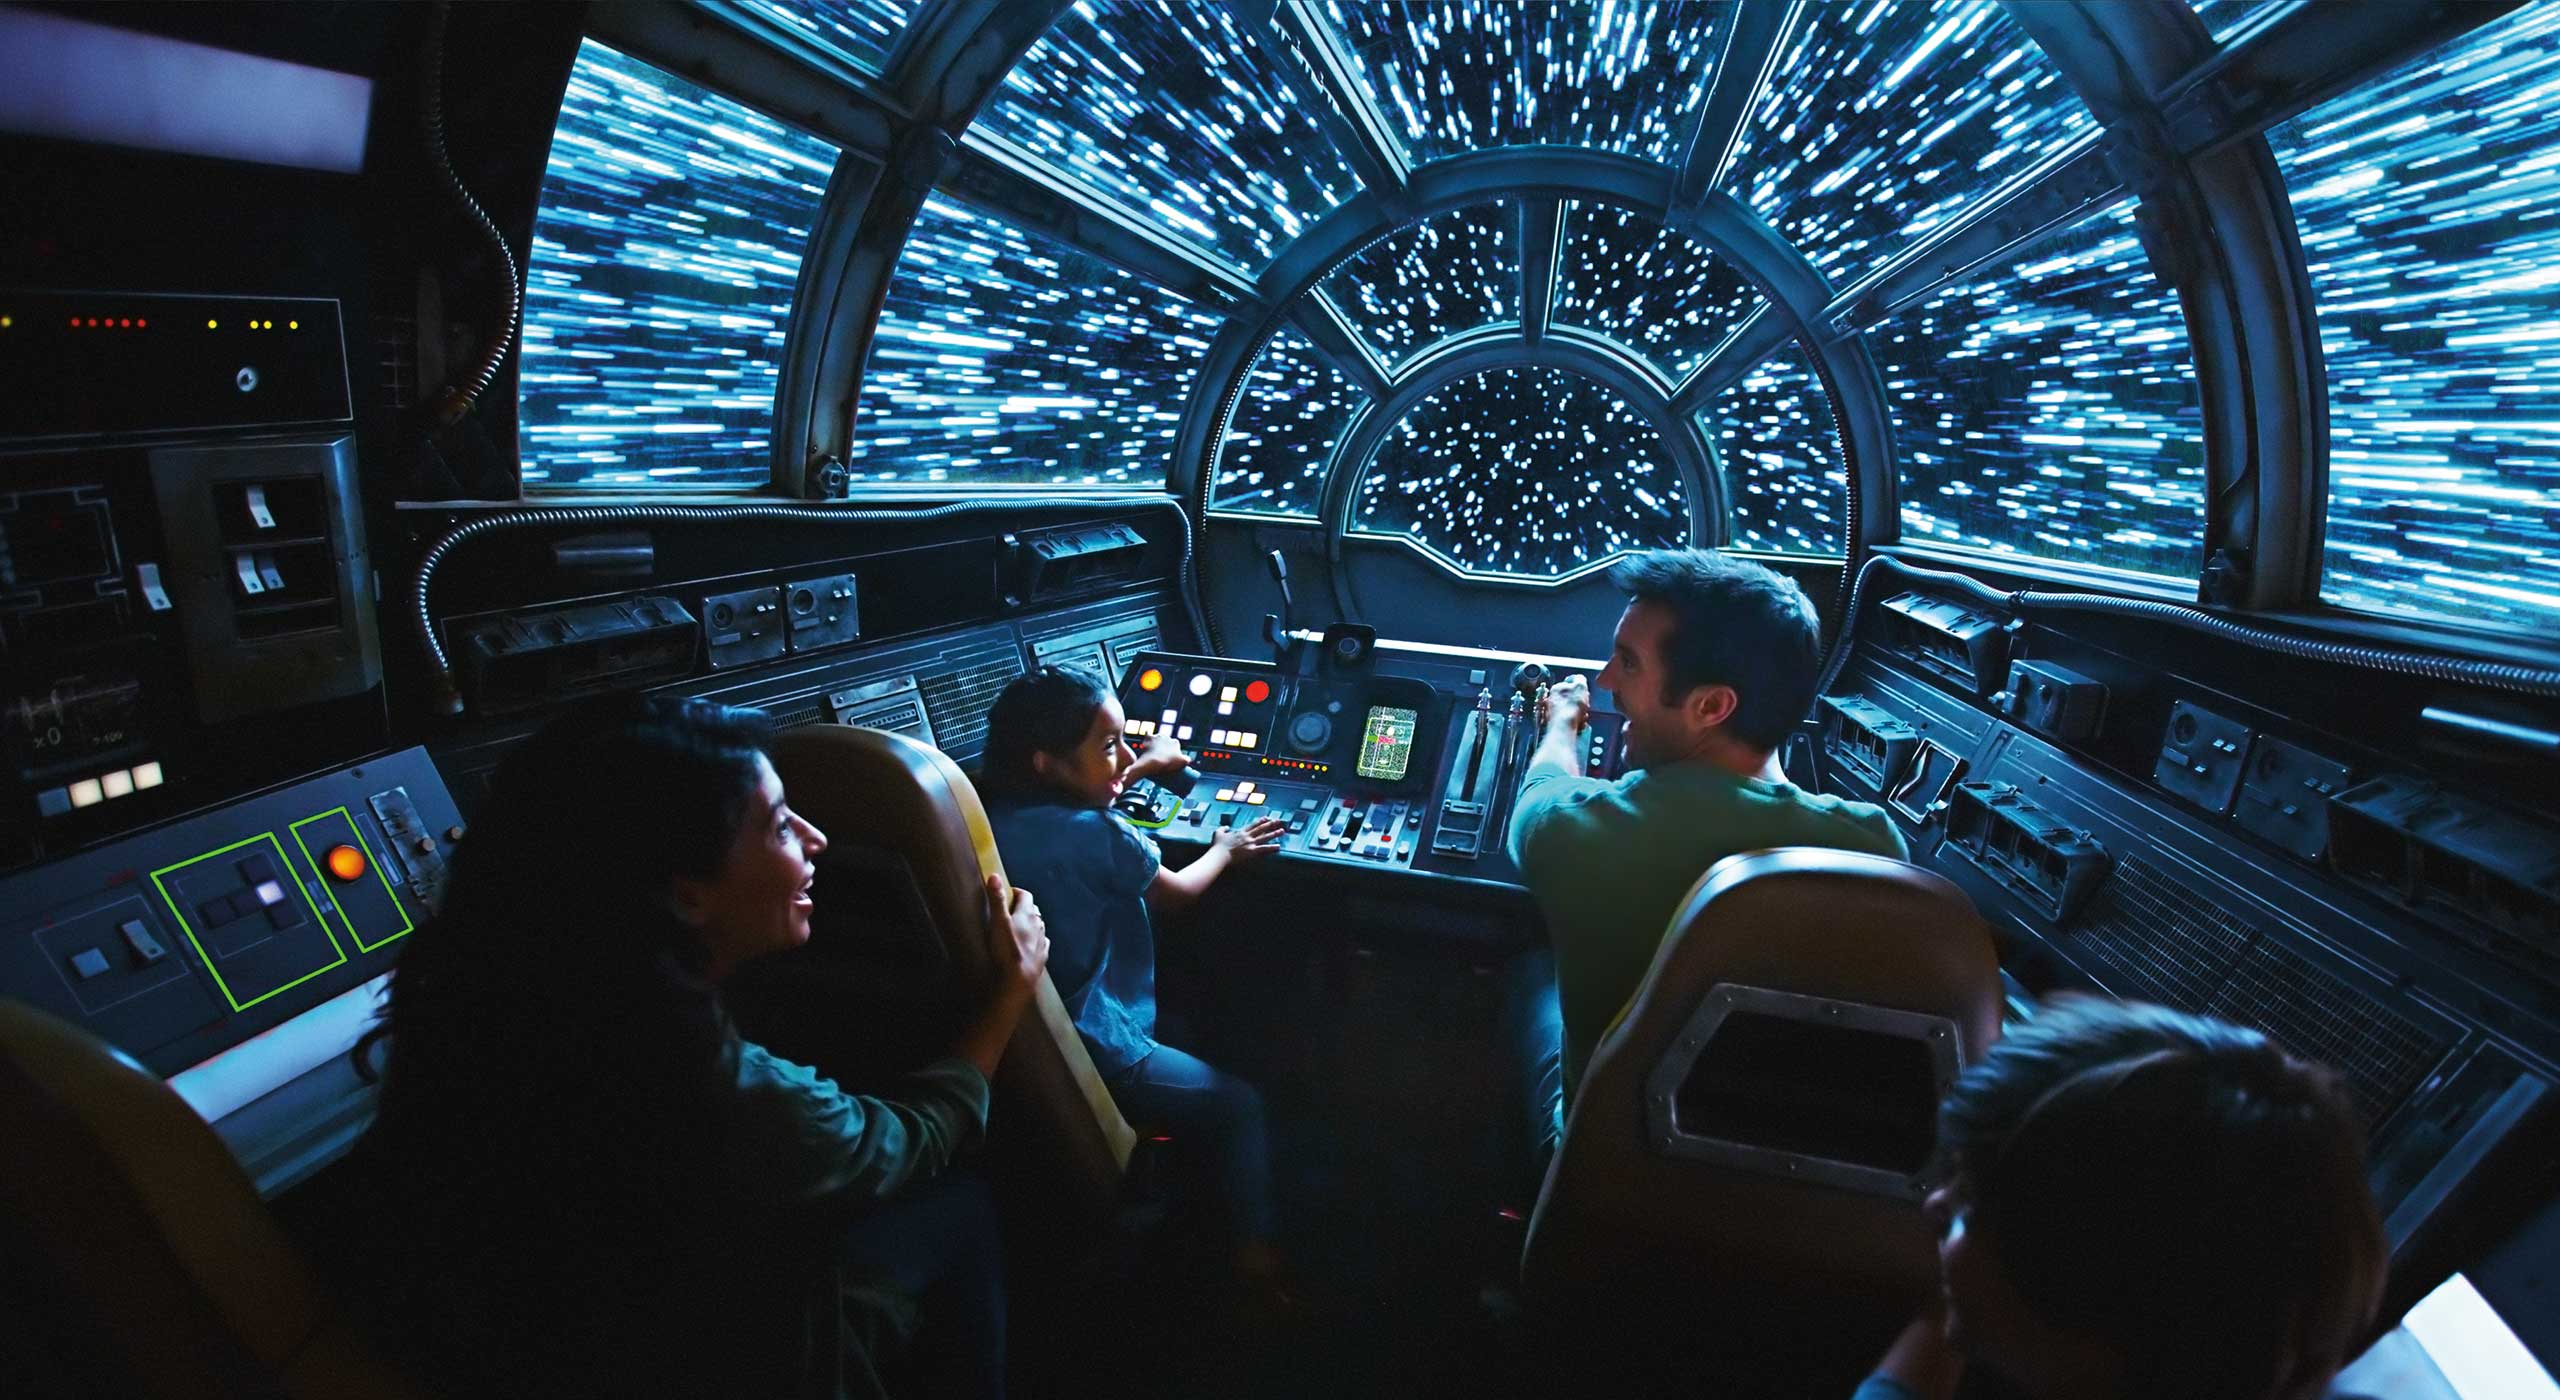 Opening date and more details for Star Wars Galaxy's Edge